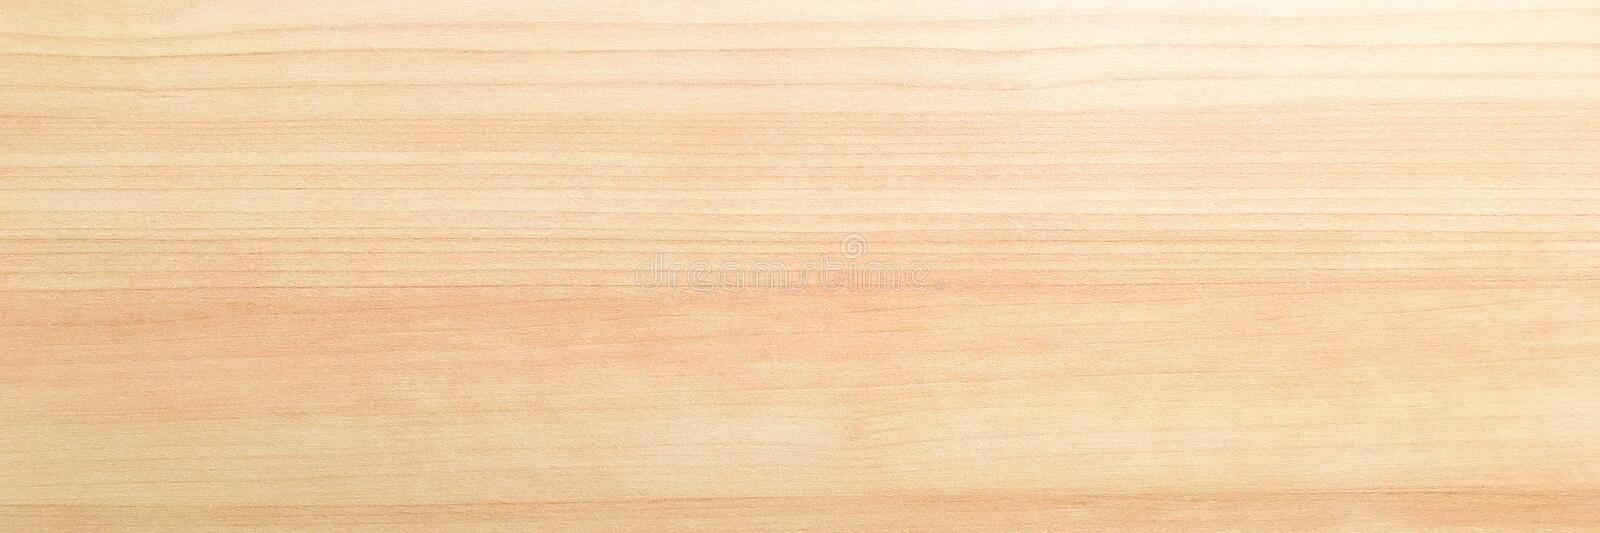 Light soft wood surface as background, wood texture. Grunge washed wood planks table pattern top view. Light soft wood surface as background, wood texture royalty free stock photo